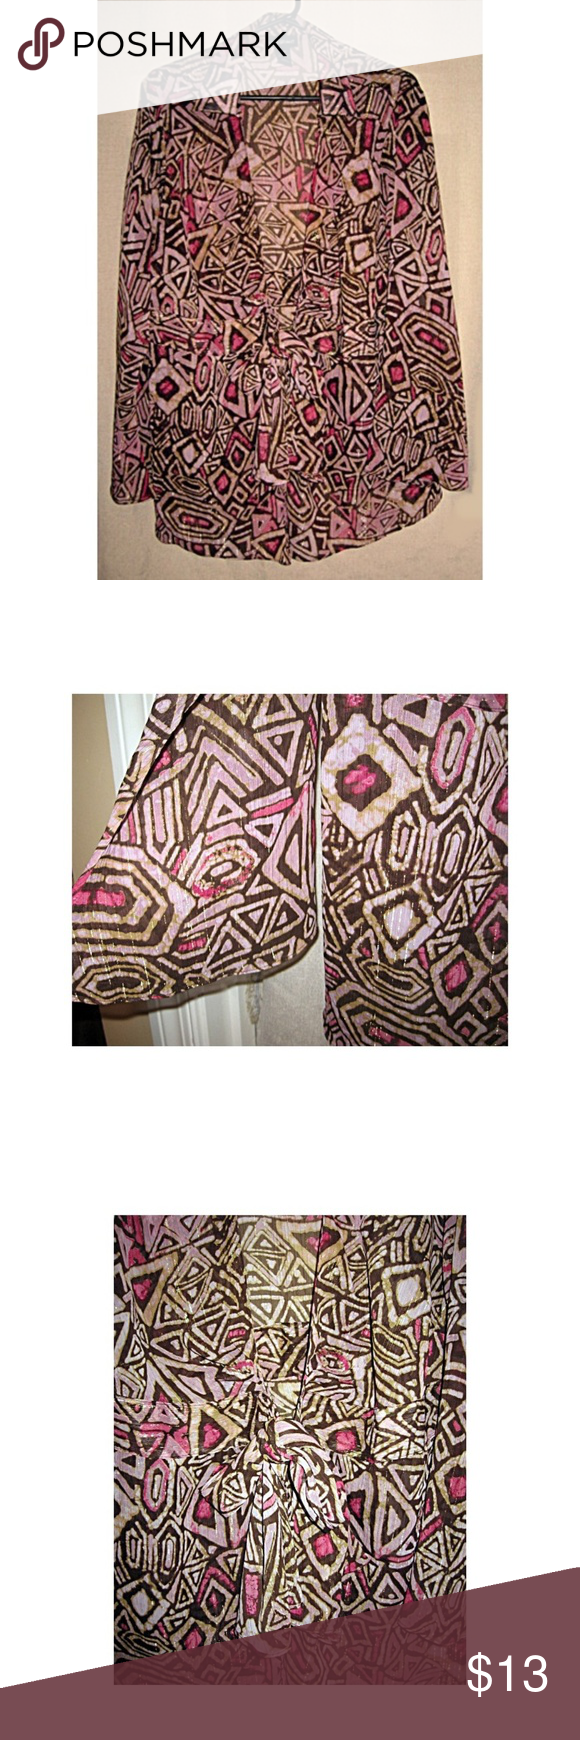 Lane Bryant Sheer Tie Front Kimono Magenta 1X NWOT  Lane Bryant sheer tie front abstract print kimono jacket. Cream, chocolate brown, and magenta print, shot through with gold. Bell sleeves Bust: 48